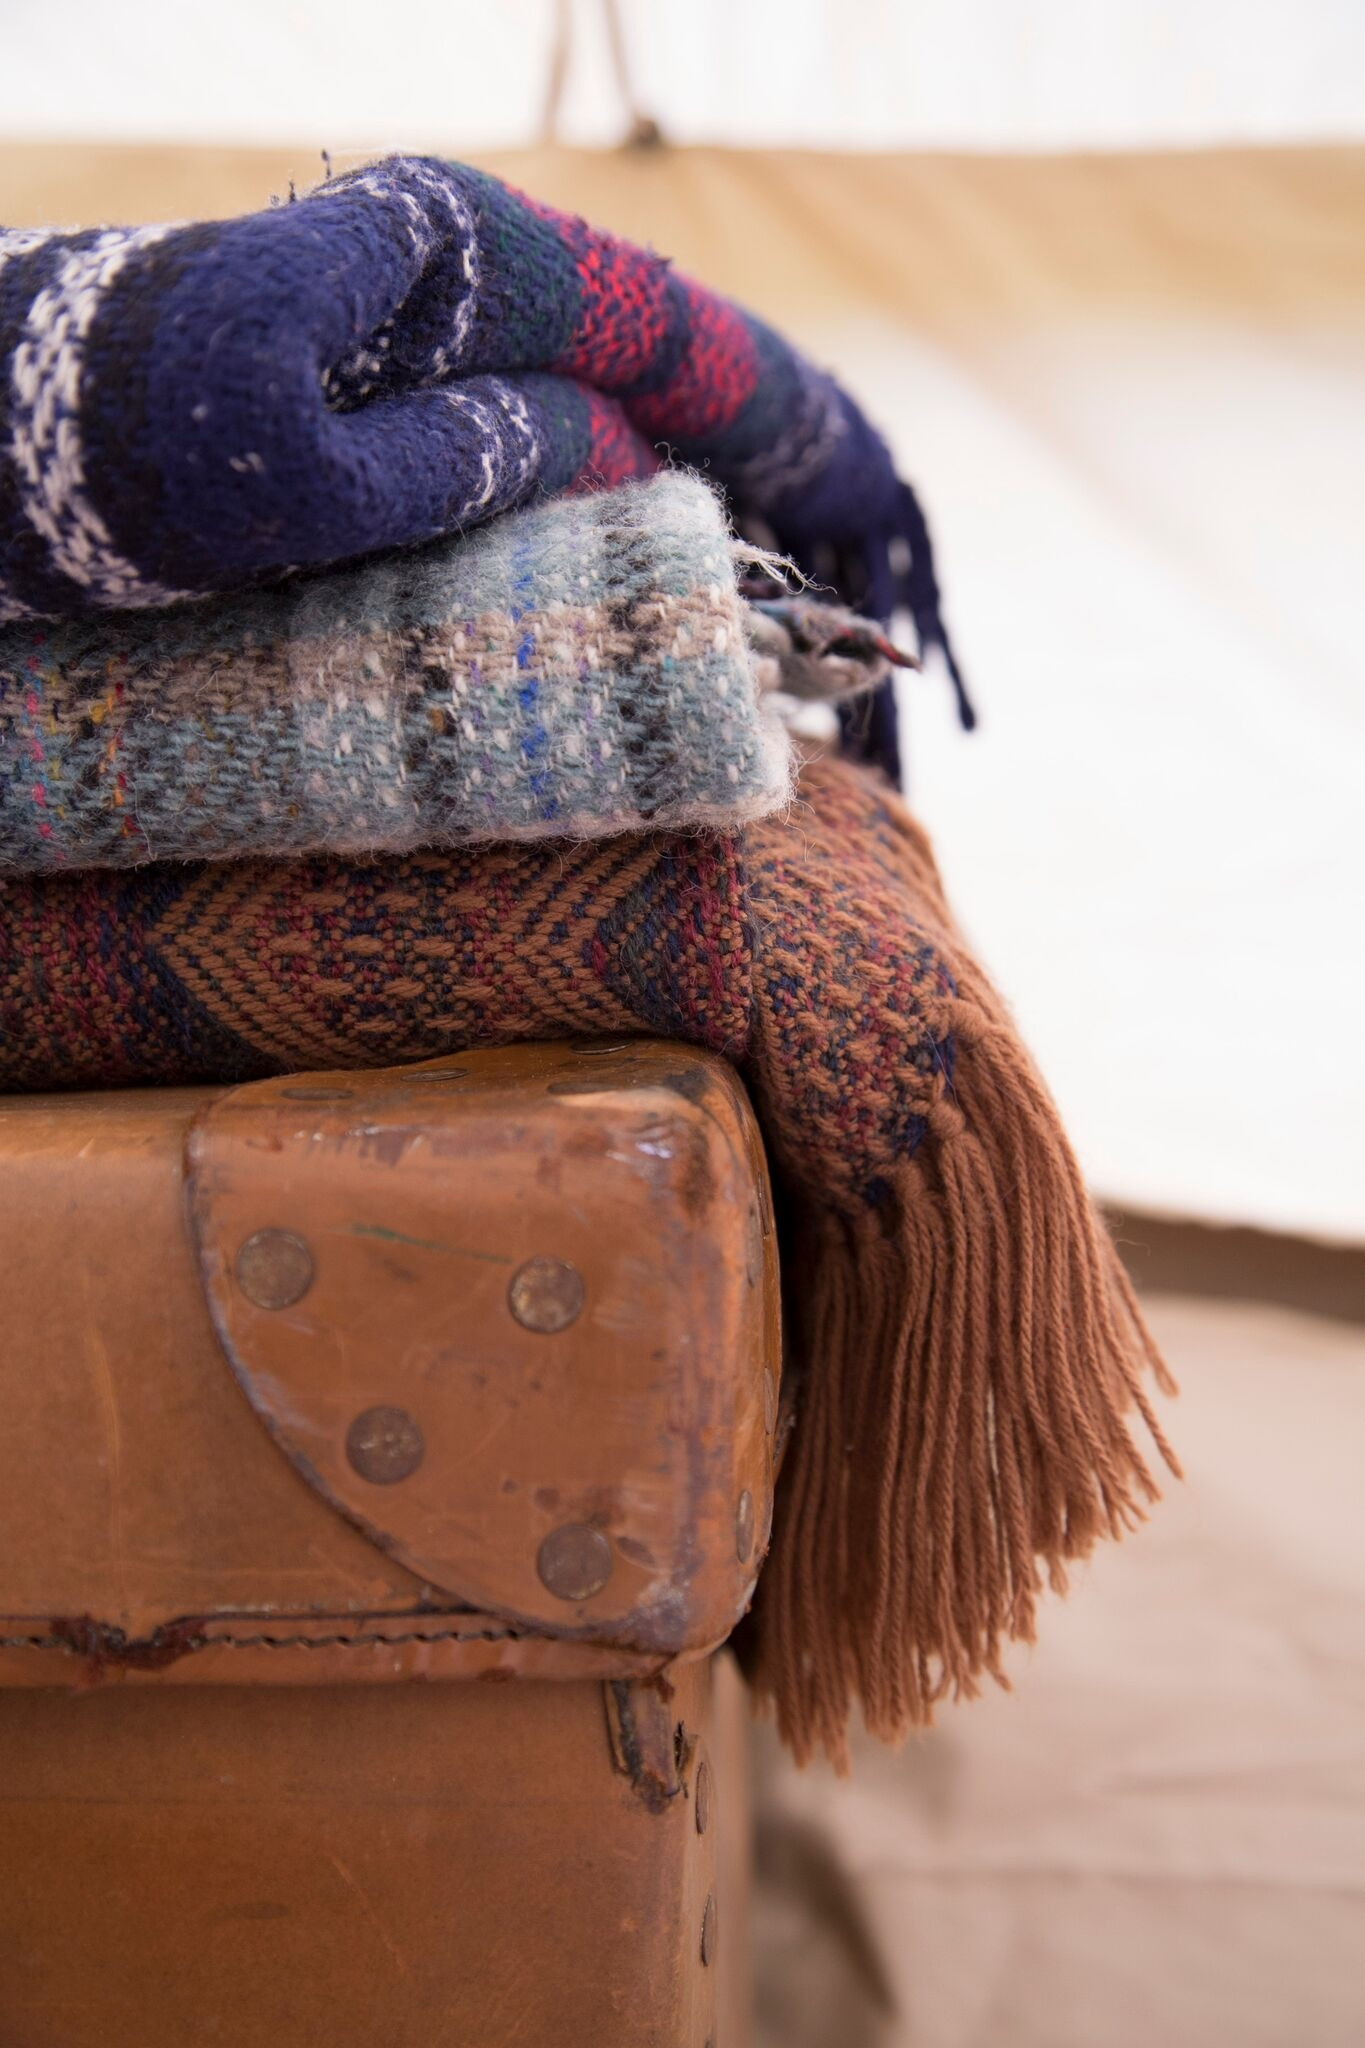 blankets-and-vintage-suitcase-in-a-bell-tent